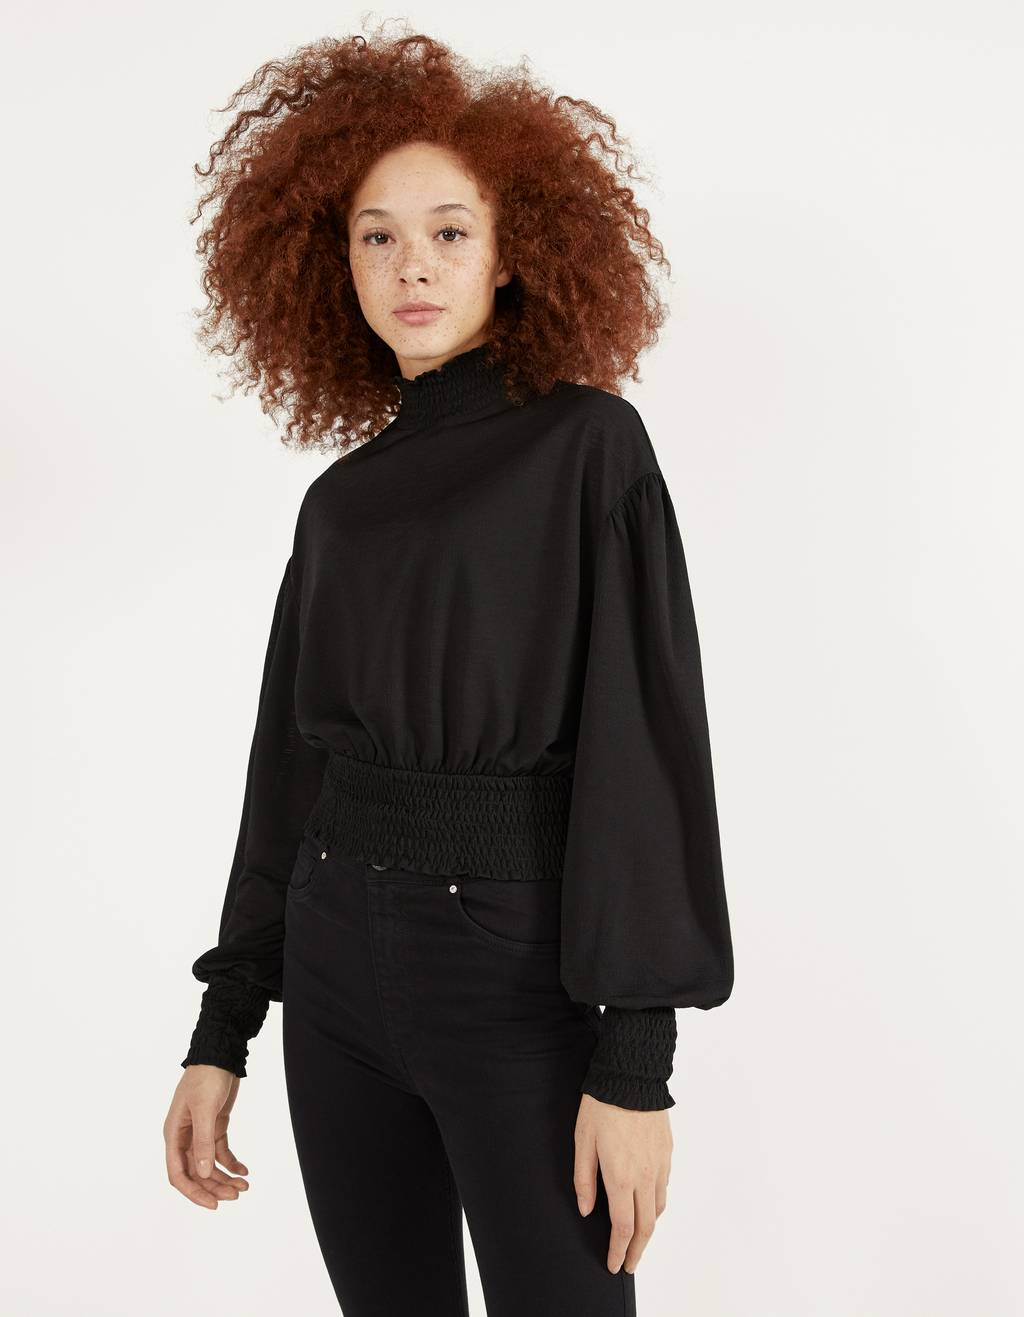 Ruched long sleeve top